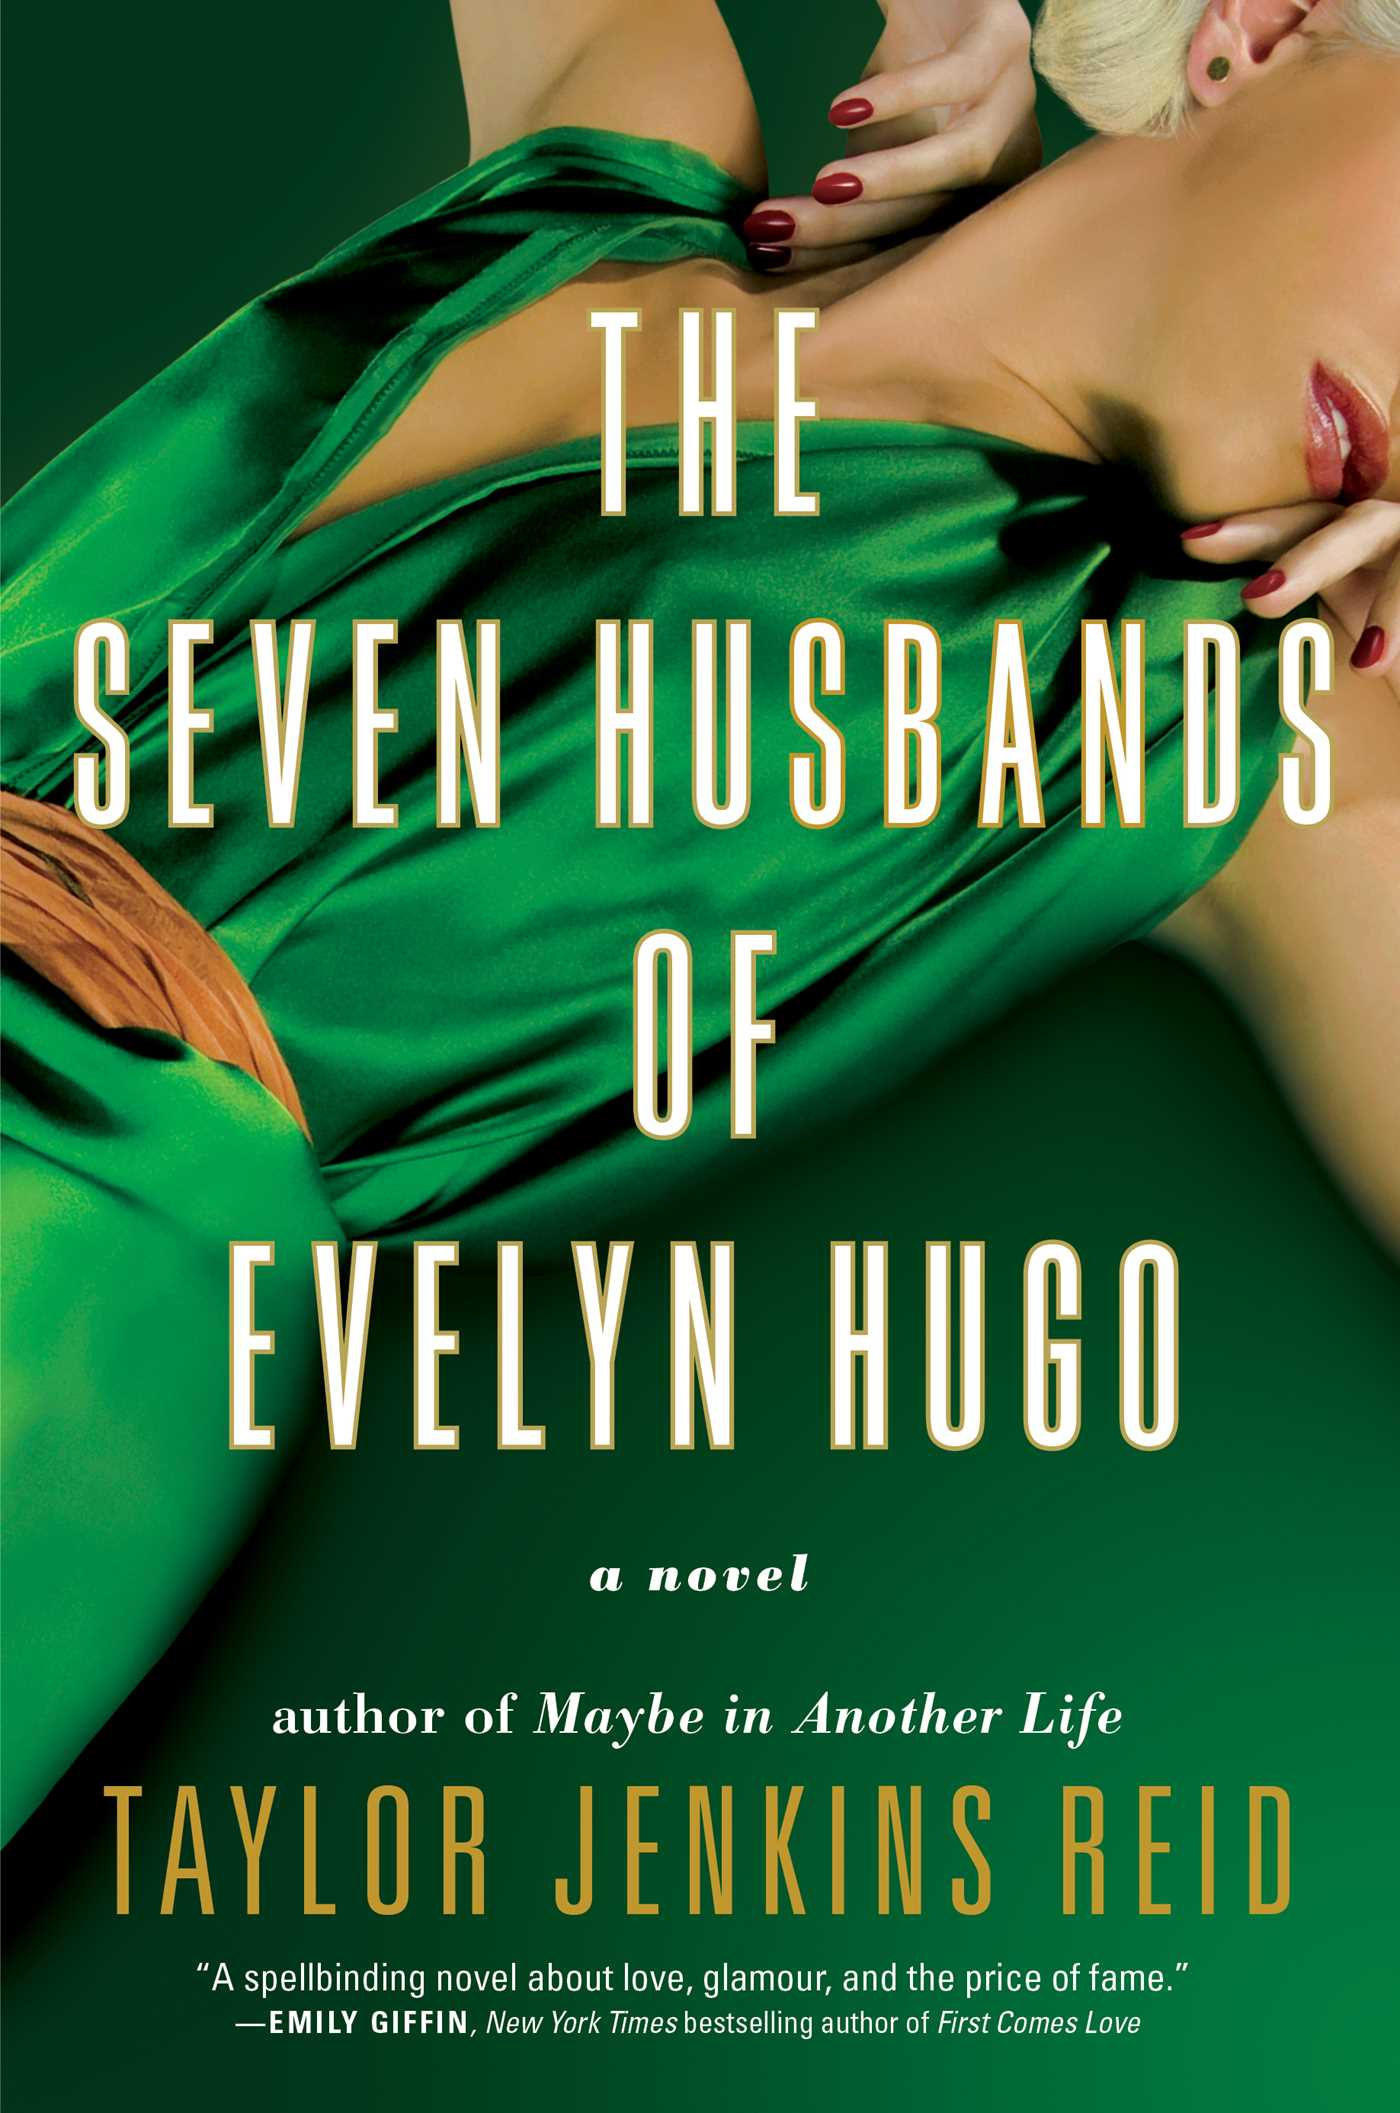 The seven husbands of evelyn hugo 9781501139239 hr